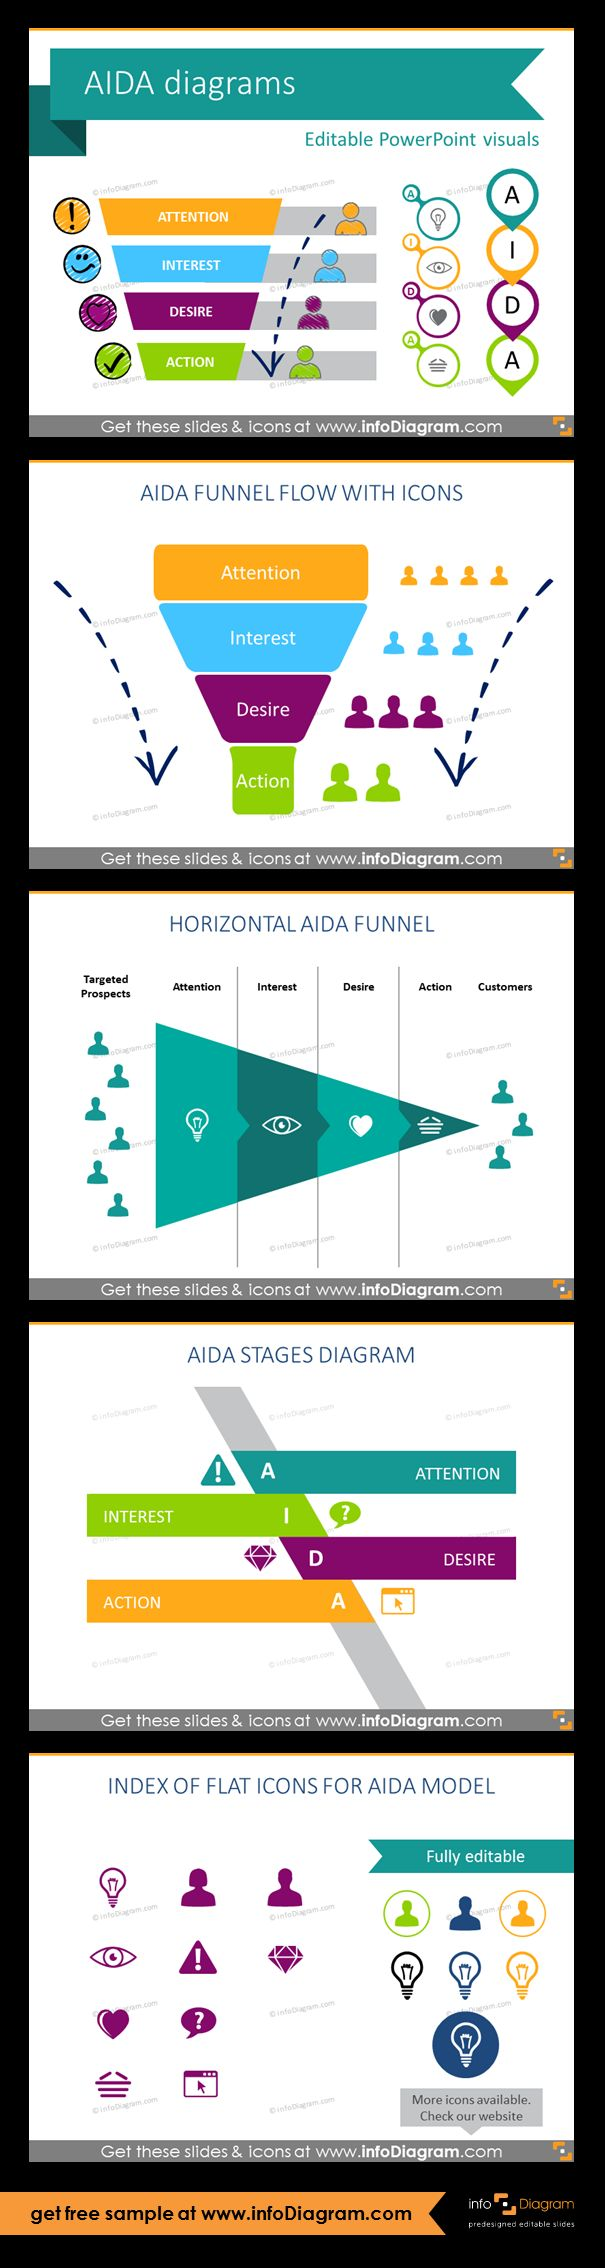 Collection AIDA marketing model diagrams as pre-designed PowerPoint slides. Fully editable vector shapes by using built-in PowerPoint tools (vector format). AIDA model diagram as a funnel which consists 4 steps: attention, interest, desire, action. Horizontal AIDA funnel with icons. Colorful AIDA stages diagram with icons of 4 steps. Index of AIDA icons: bulb, man, woman, eye, exclamation mark, diamond, heart, question mark, customer, mood, check sign.